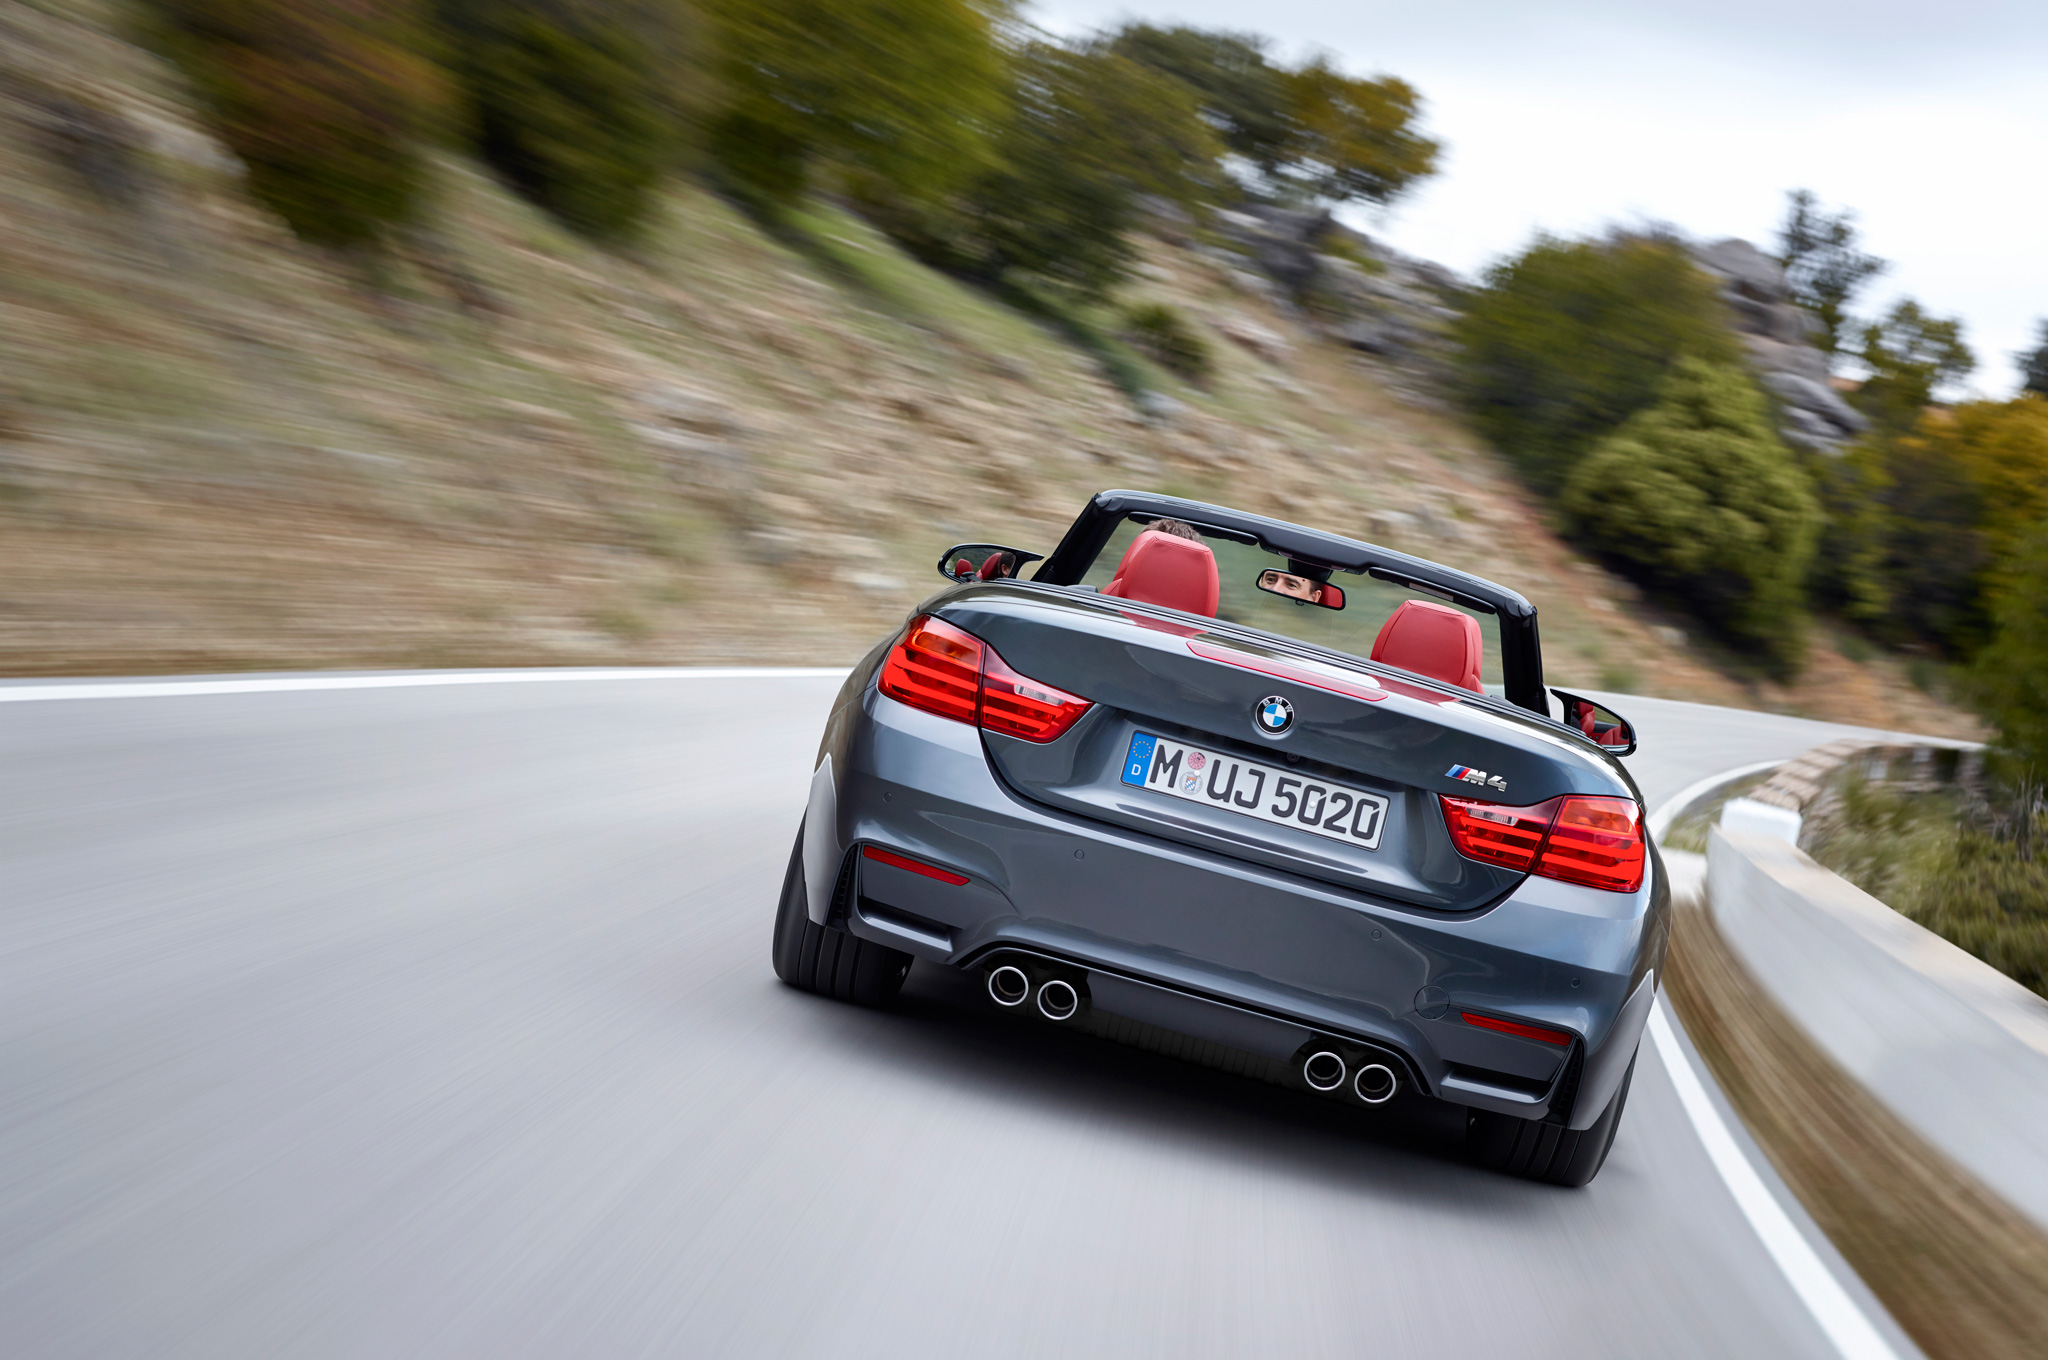 2015 Bmw M4 Convertible Rear View Performance (View 15 of 50)